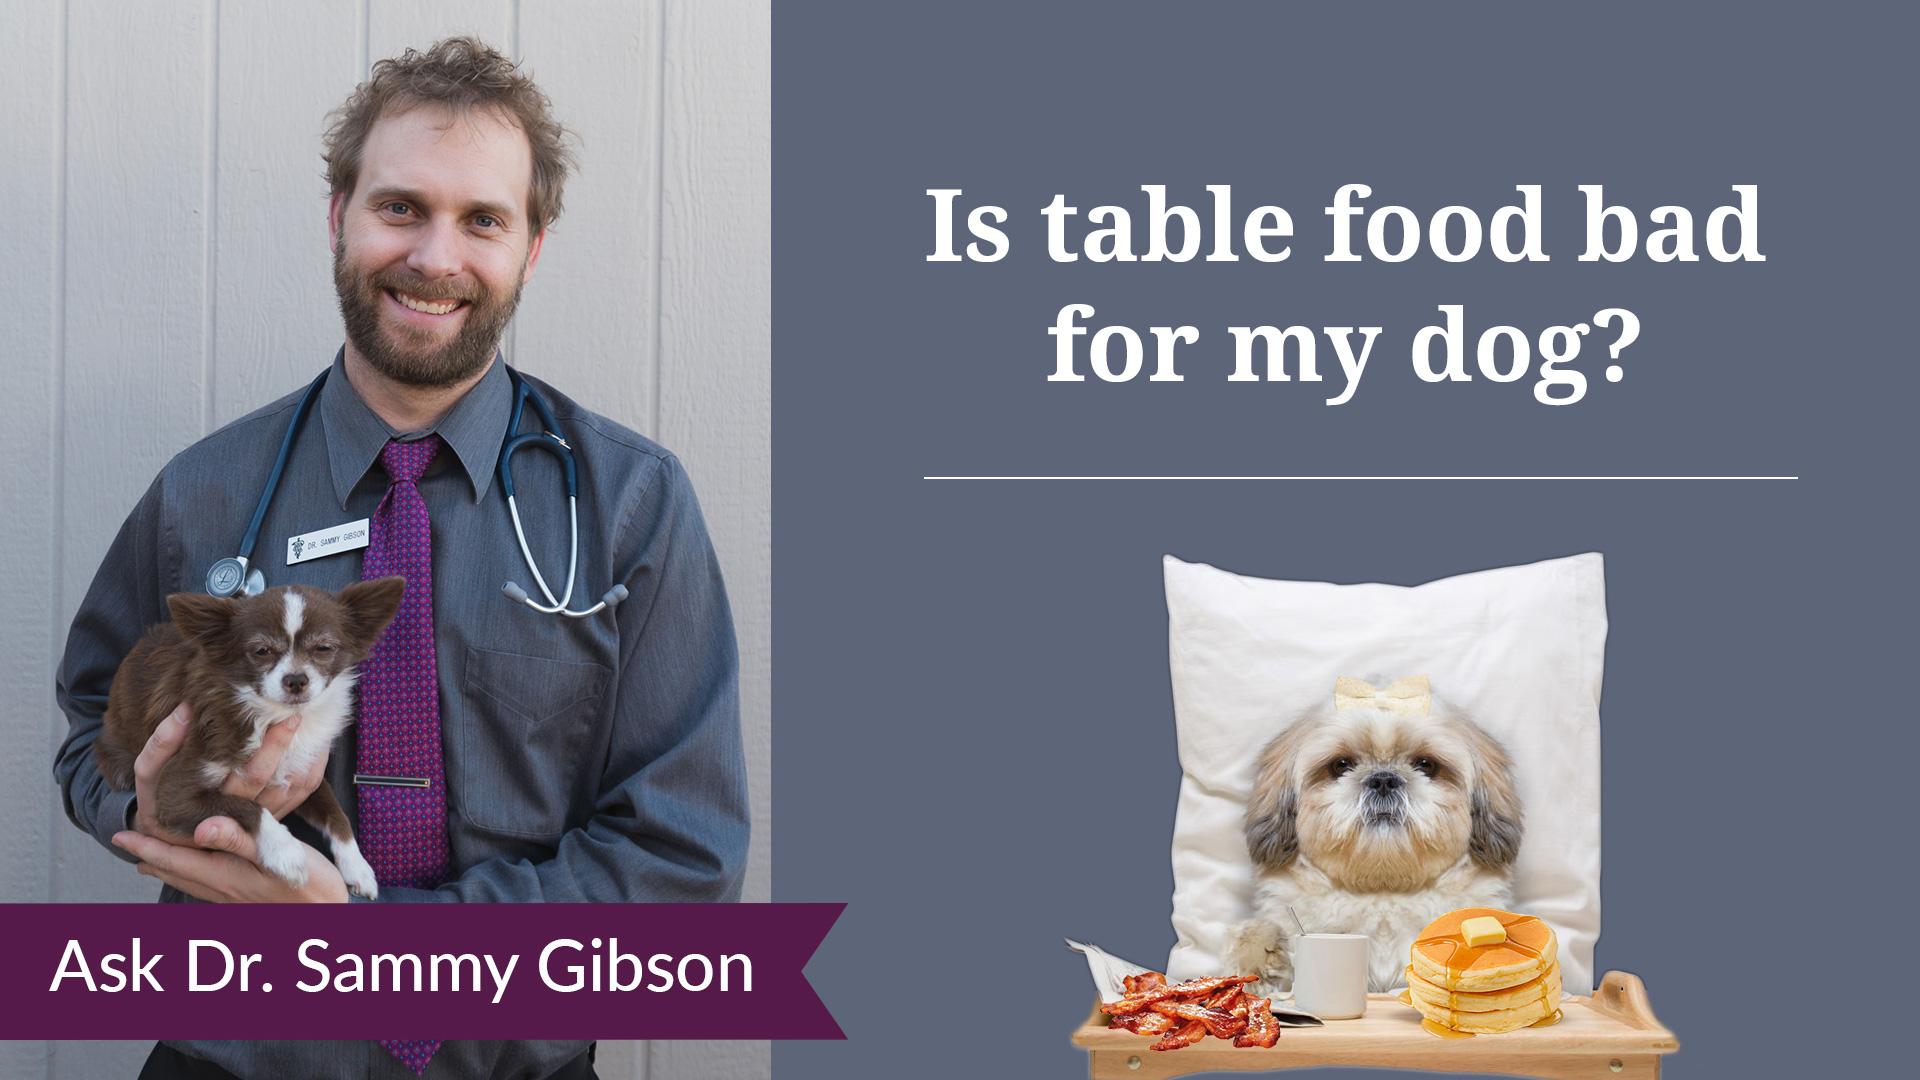 A picture of a dog on a pillow with table of table food